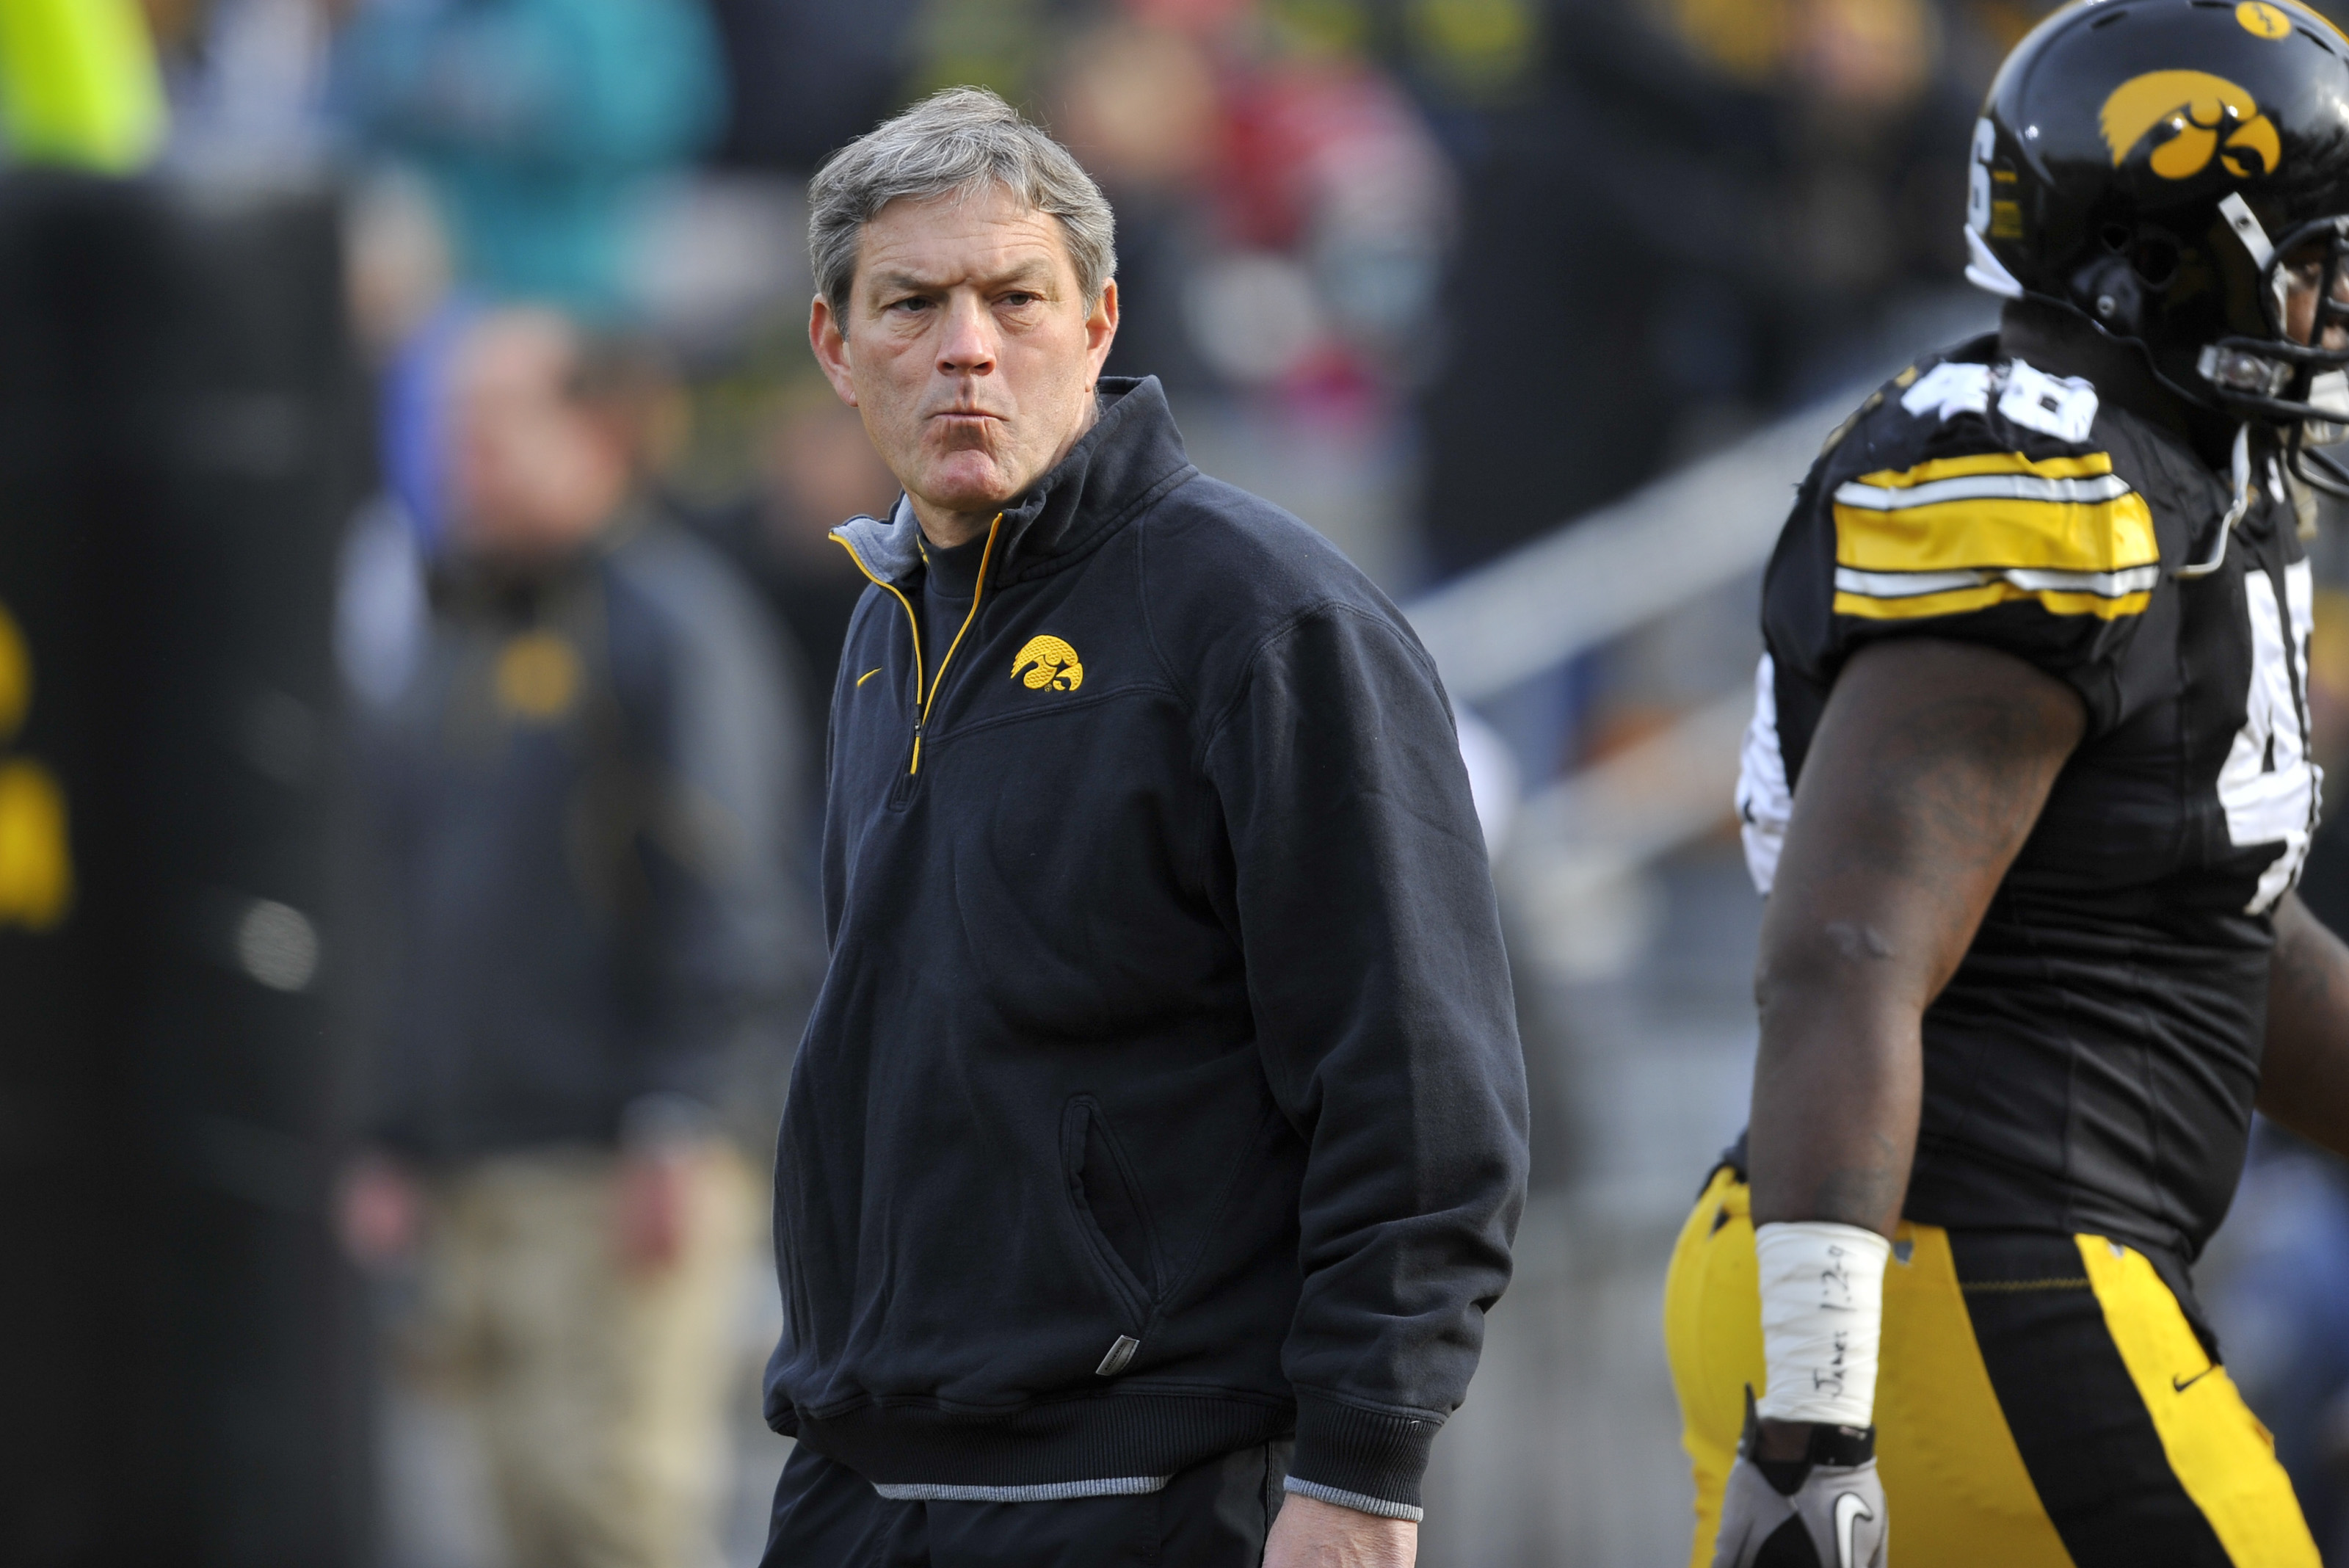 IOWA CITY, IA - NOVEMBER 20: University of Iowa Hawkeyes head coach Kirk Ferentz looks on from the sideline during pre game warm ups before game action against the Ohio State Buckeyes at Kinnick Stadium on November 20, 2010 in Iowa City, Iowa. Ohio State